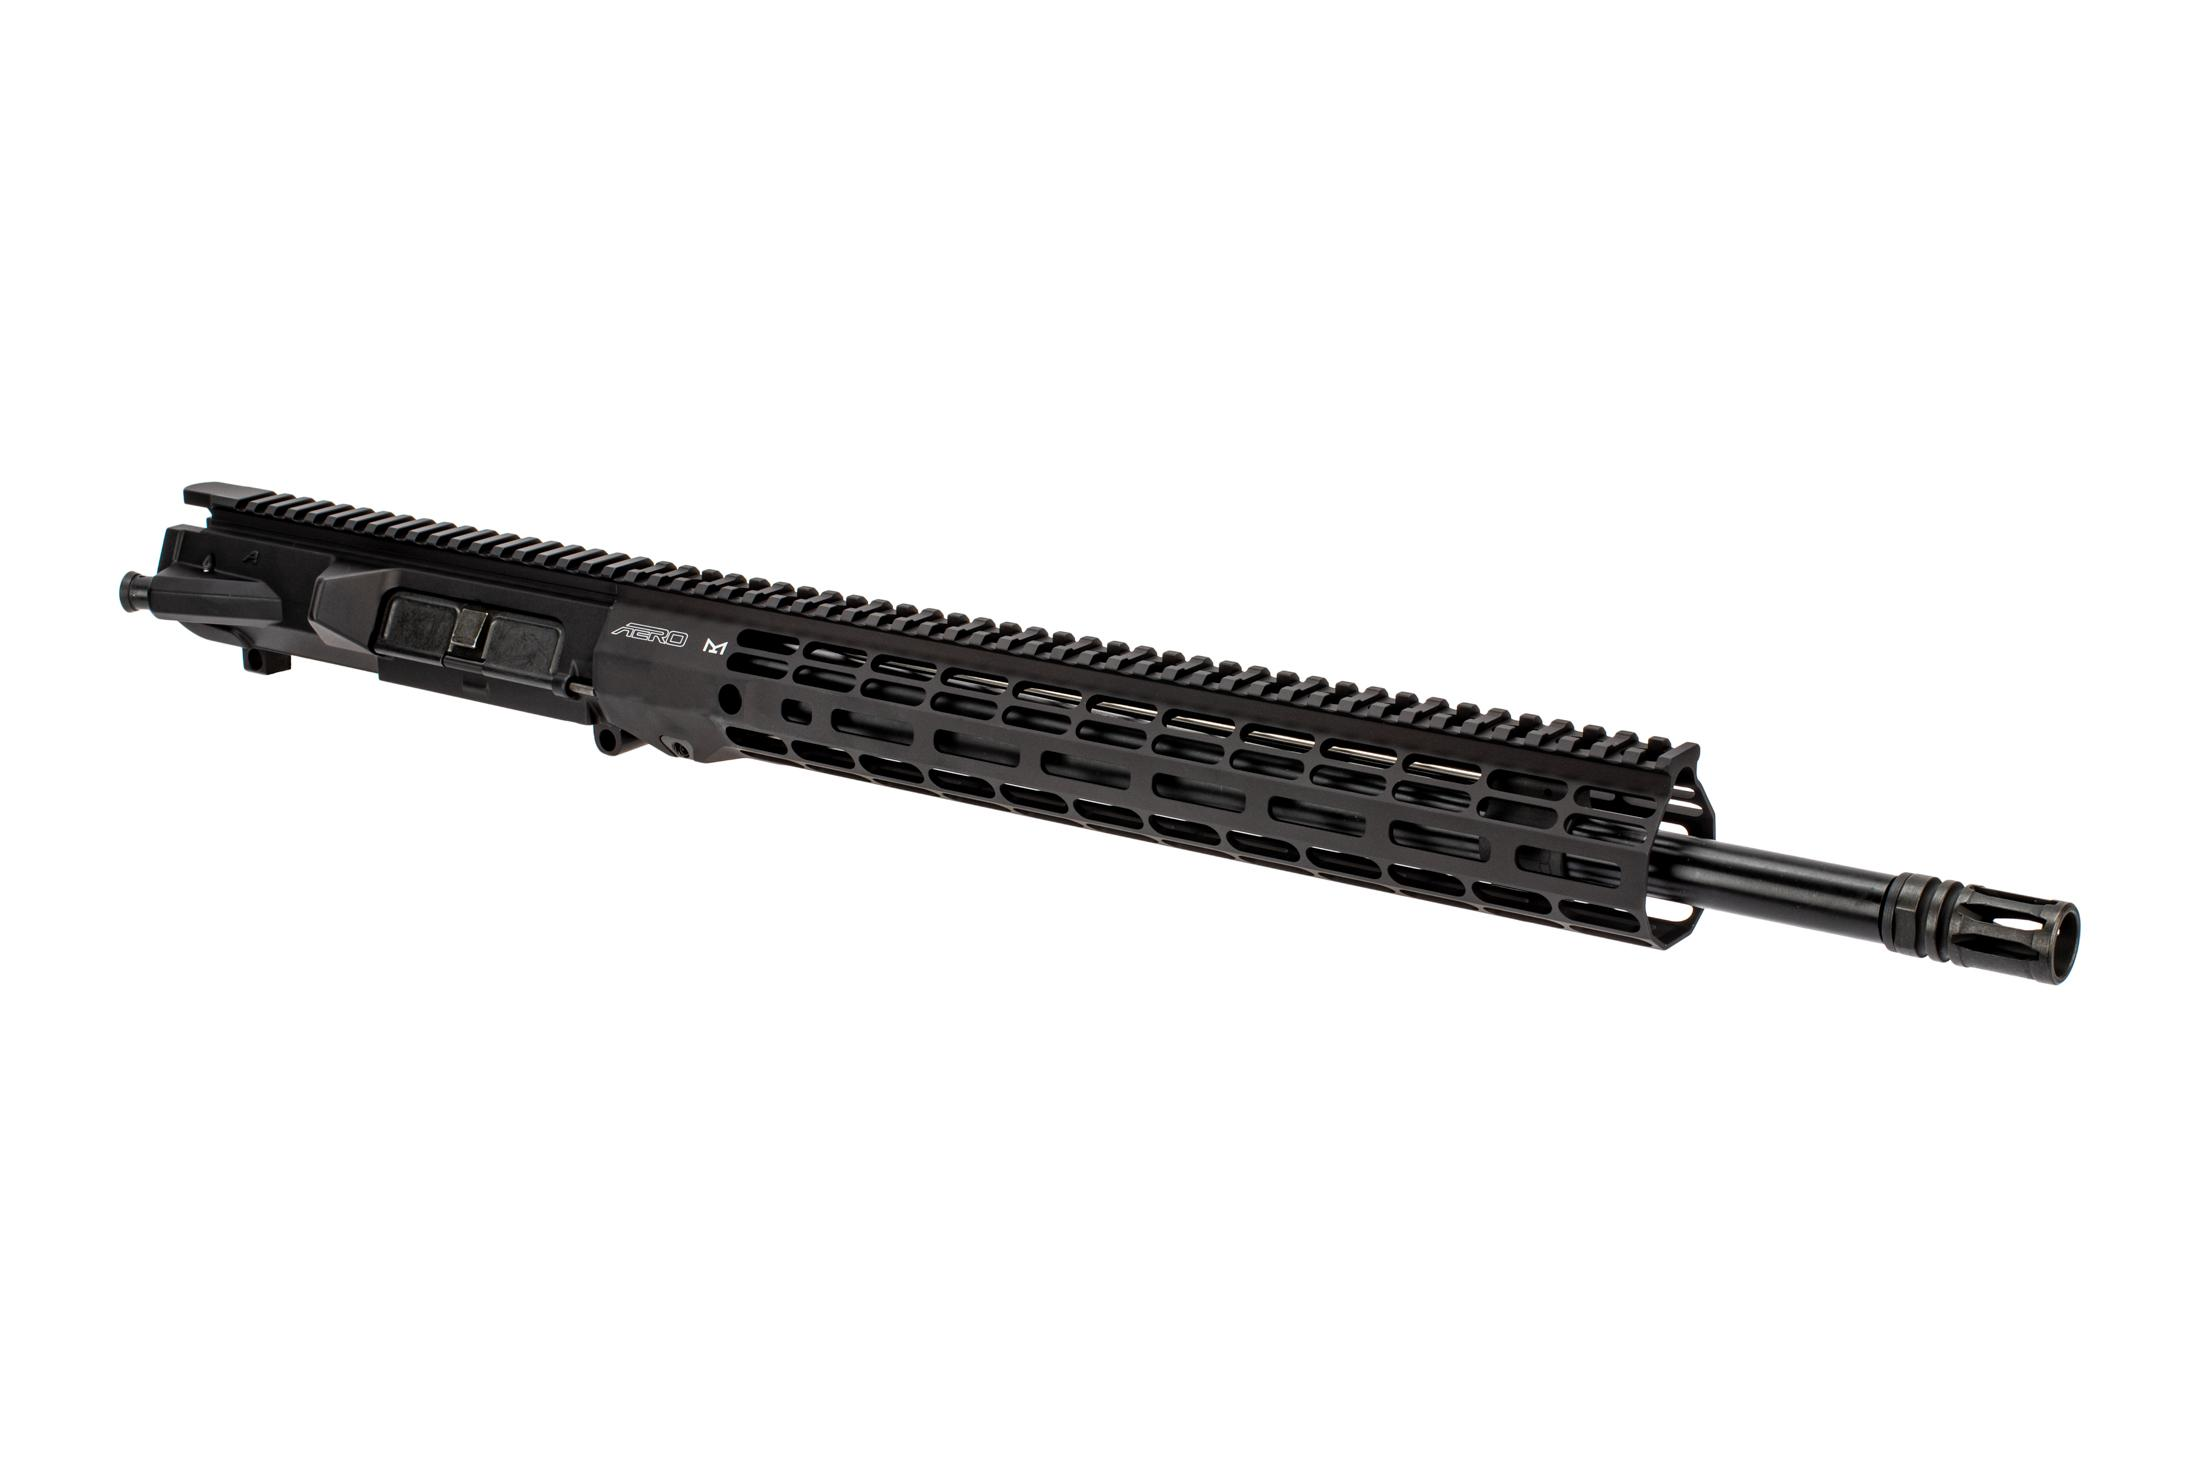 Aero Precision M5 18 barreled upper receiver with .308 chamber mid-length gas system and Atlas R-ONE black handguard